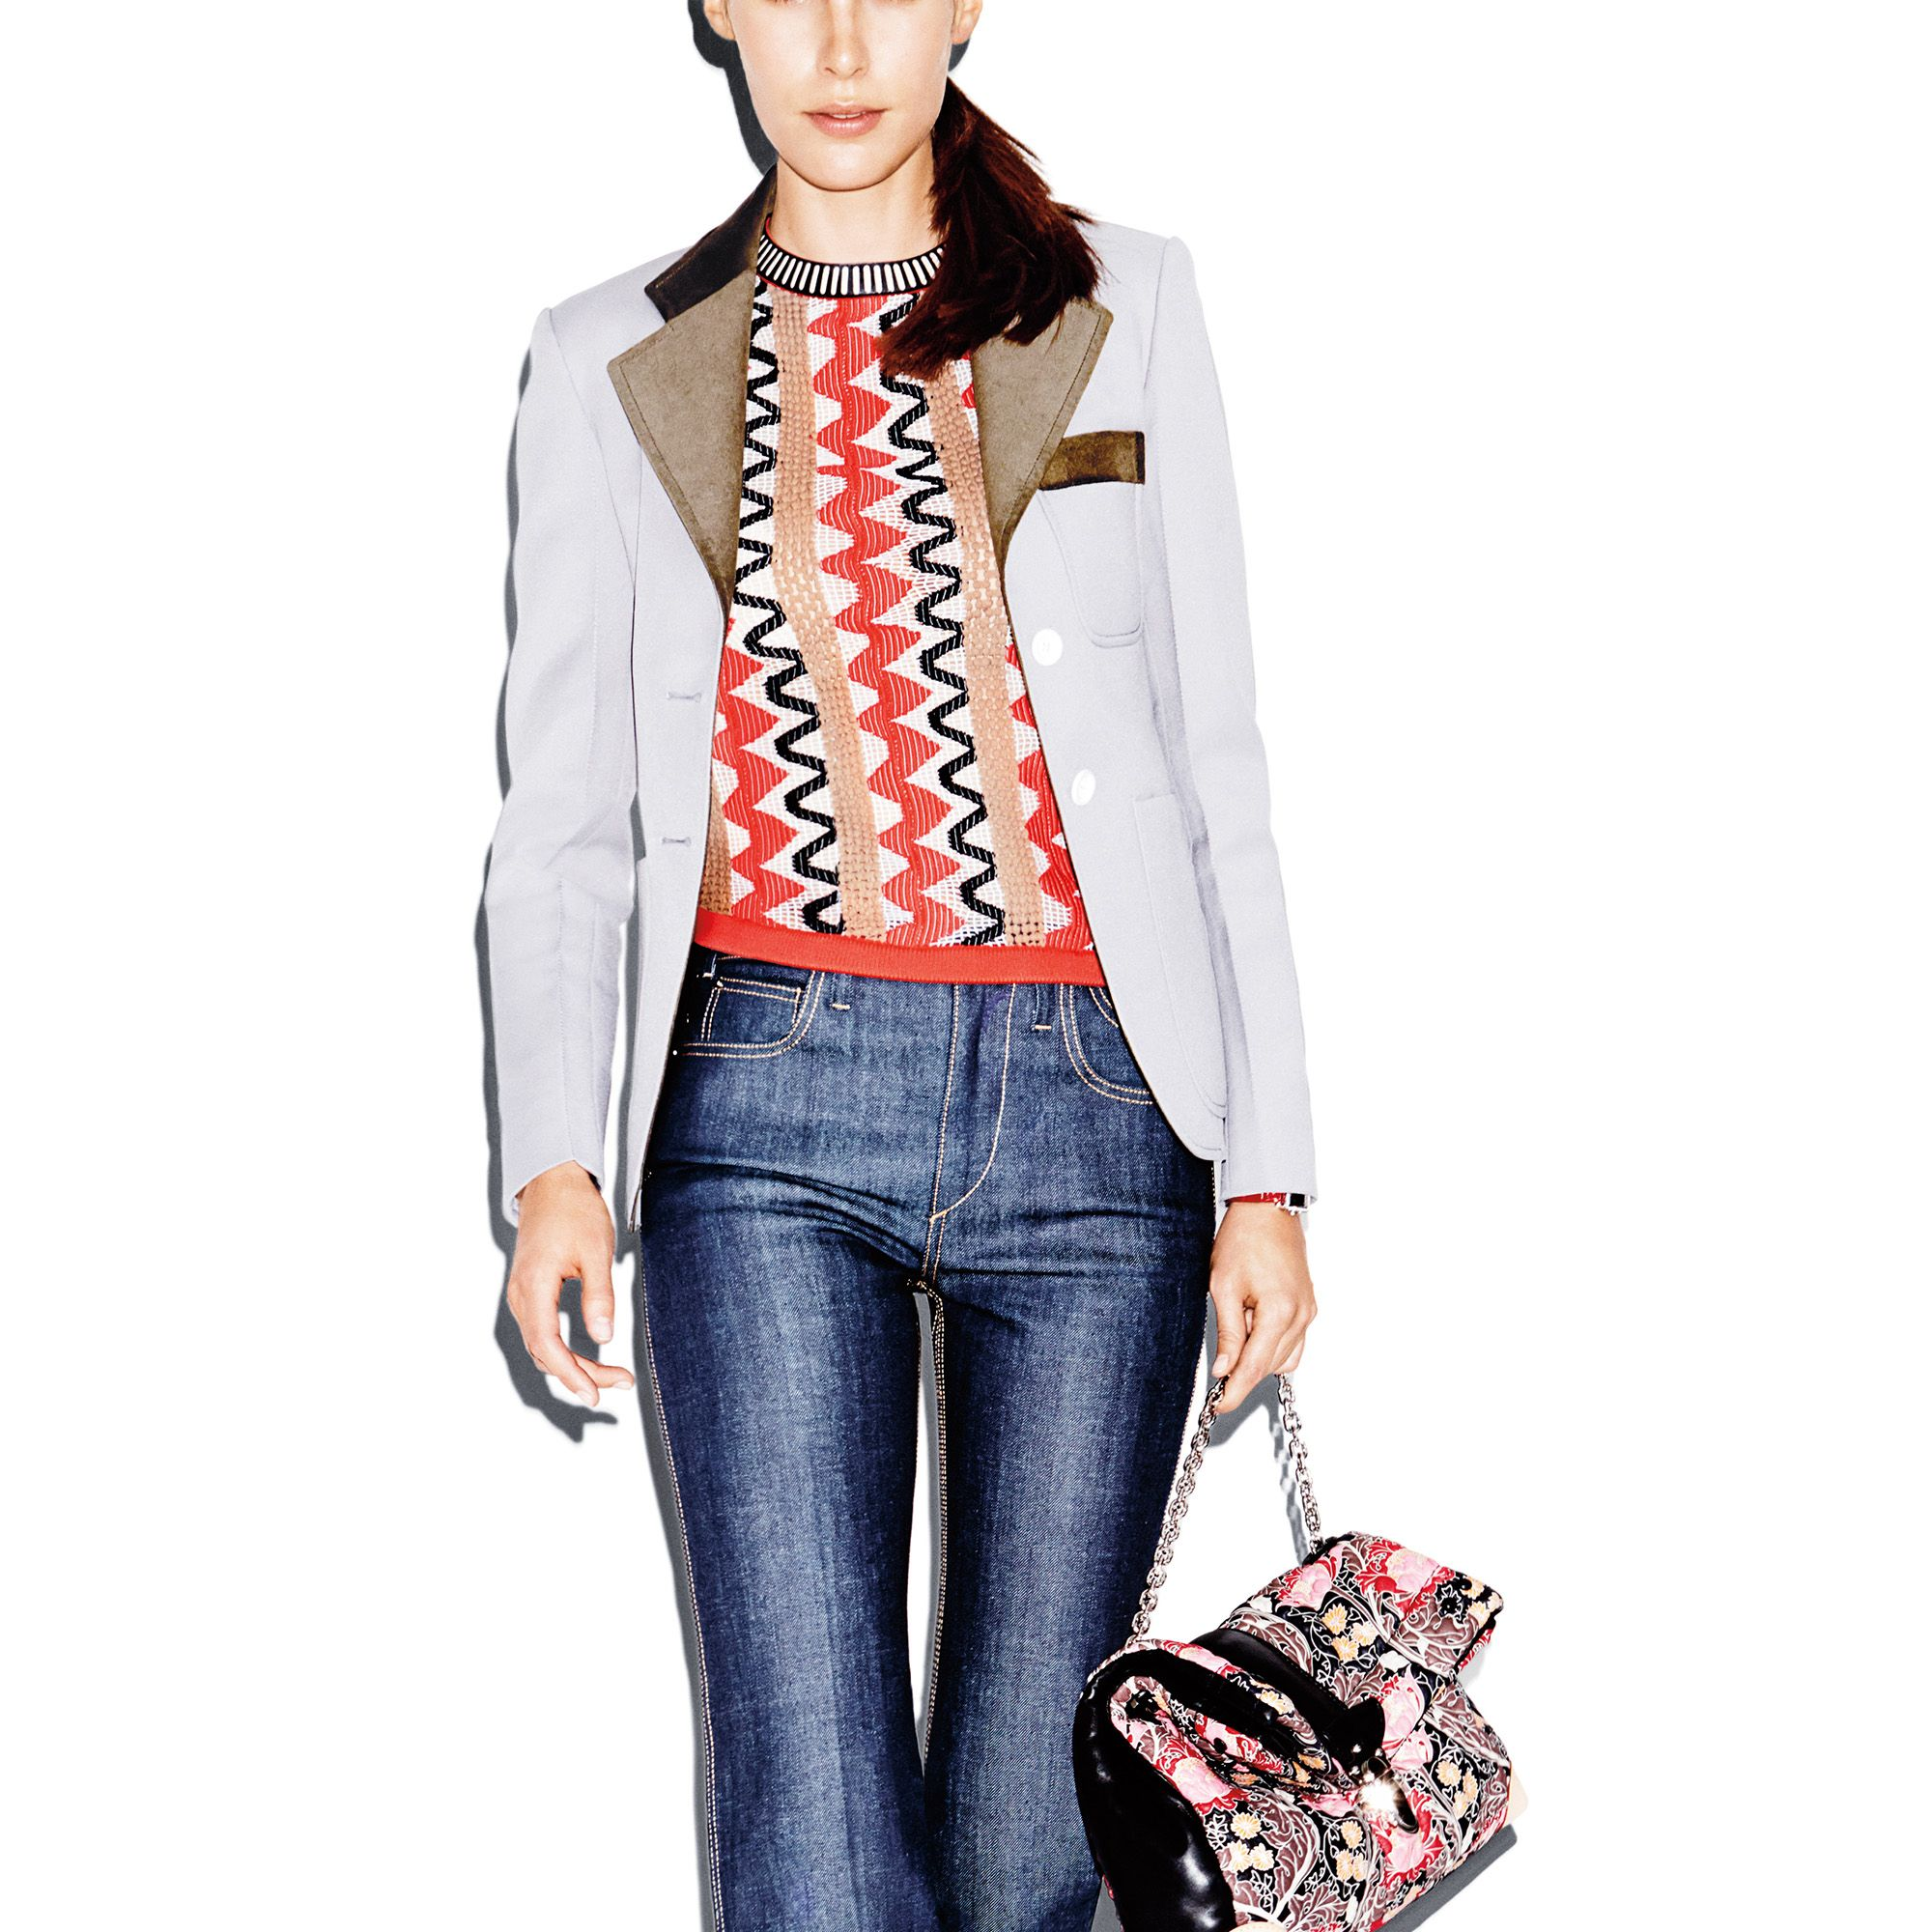 <strong>5) The Printed Knit</strong>Spring's sweater finds inspirationin '70s patterns.<strong>6) The Boy Blazer</strong>This shrunken jacket is freshened up with a contrast collar.<strong>7) The Trouser Jean&nbsp&#x3B;</strong>The new denim, sleek and straight-legged, is significantly more dressed up.<strong>Louis Vuitton</strong>&nbsp&#x3B;bag, $5,200,&nbsp&#x3B;jacket, sweater, jeans, watch&nbsp&#x3B;and boots, price upon request, 866-VUITTON.&nbsp&#x3B;&nbsp&#x3B;